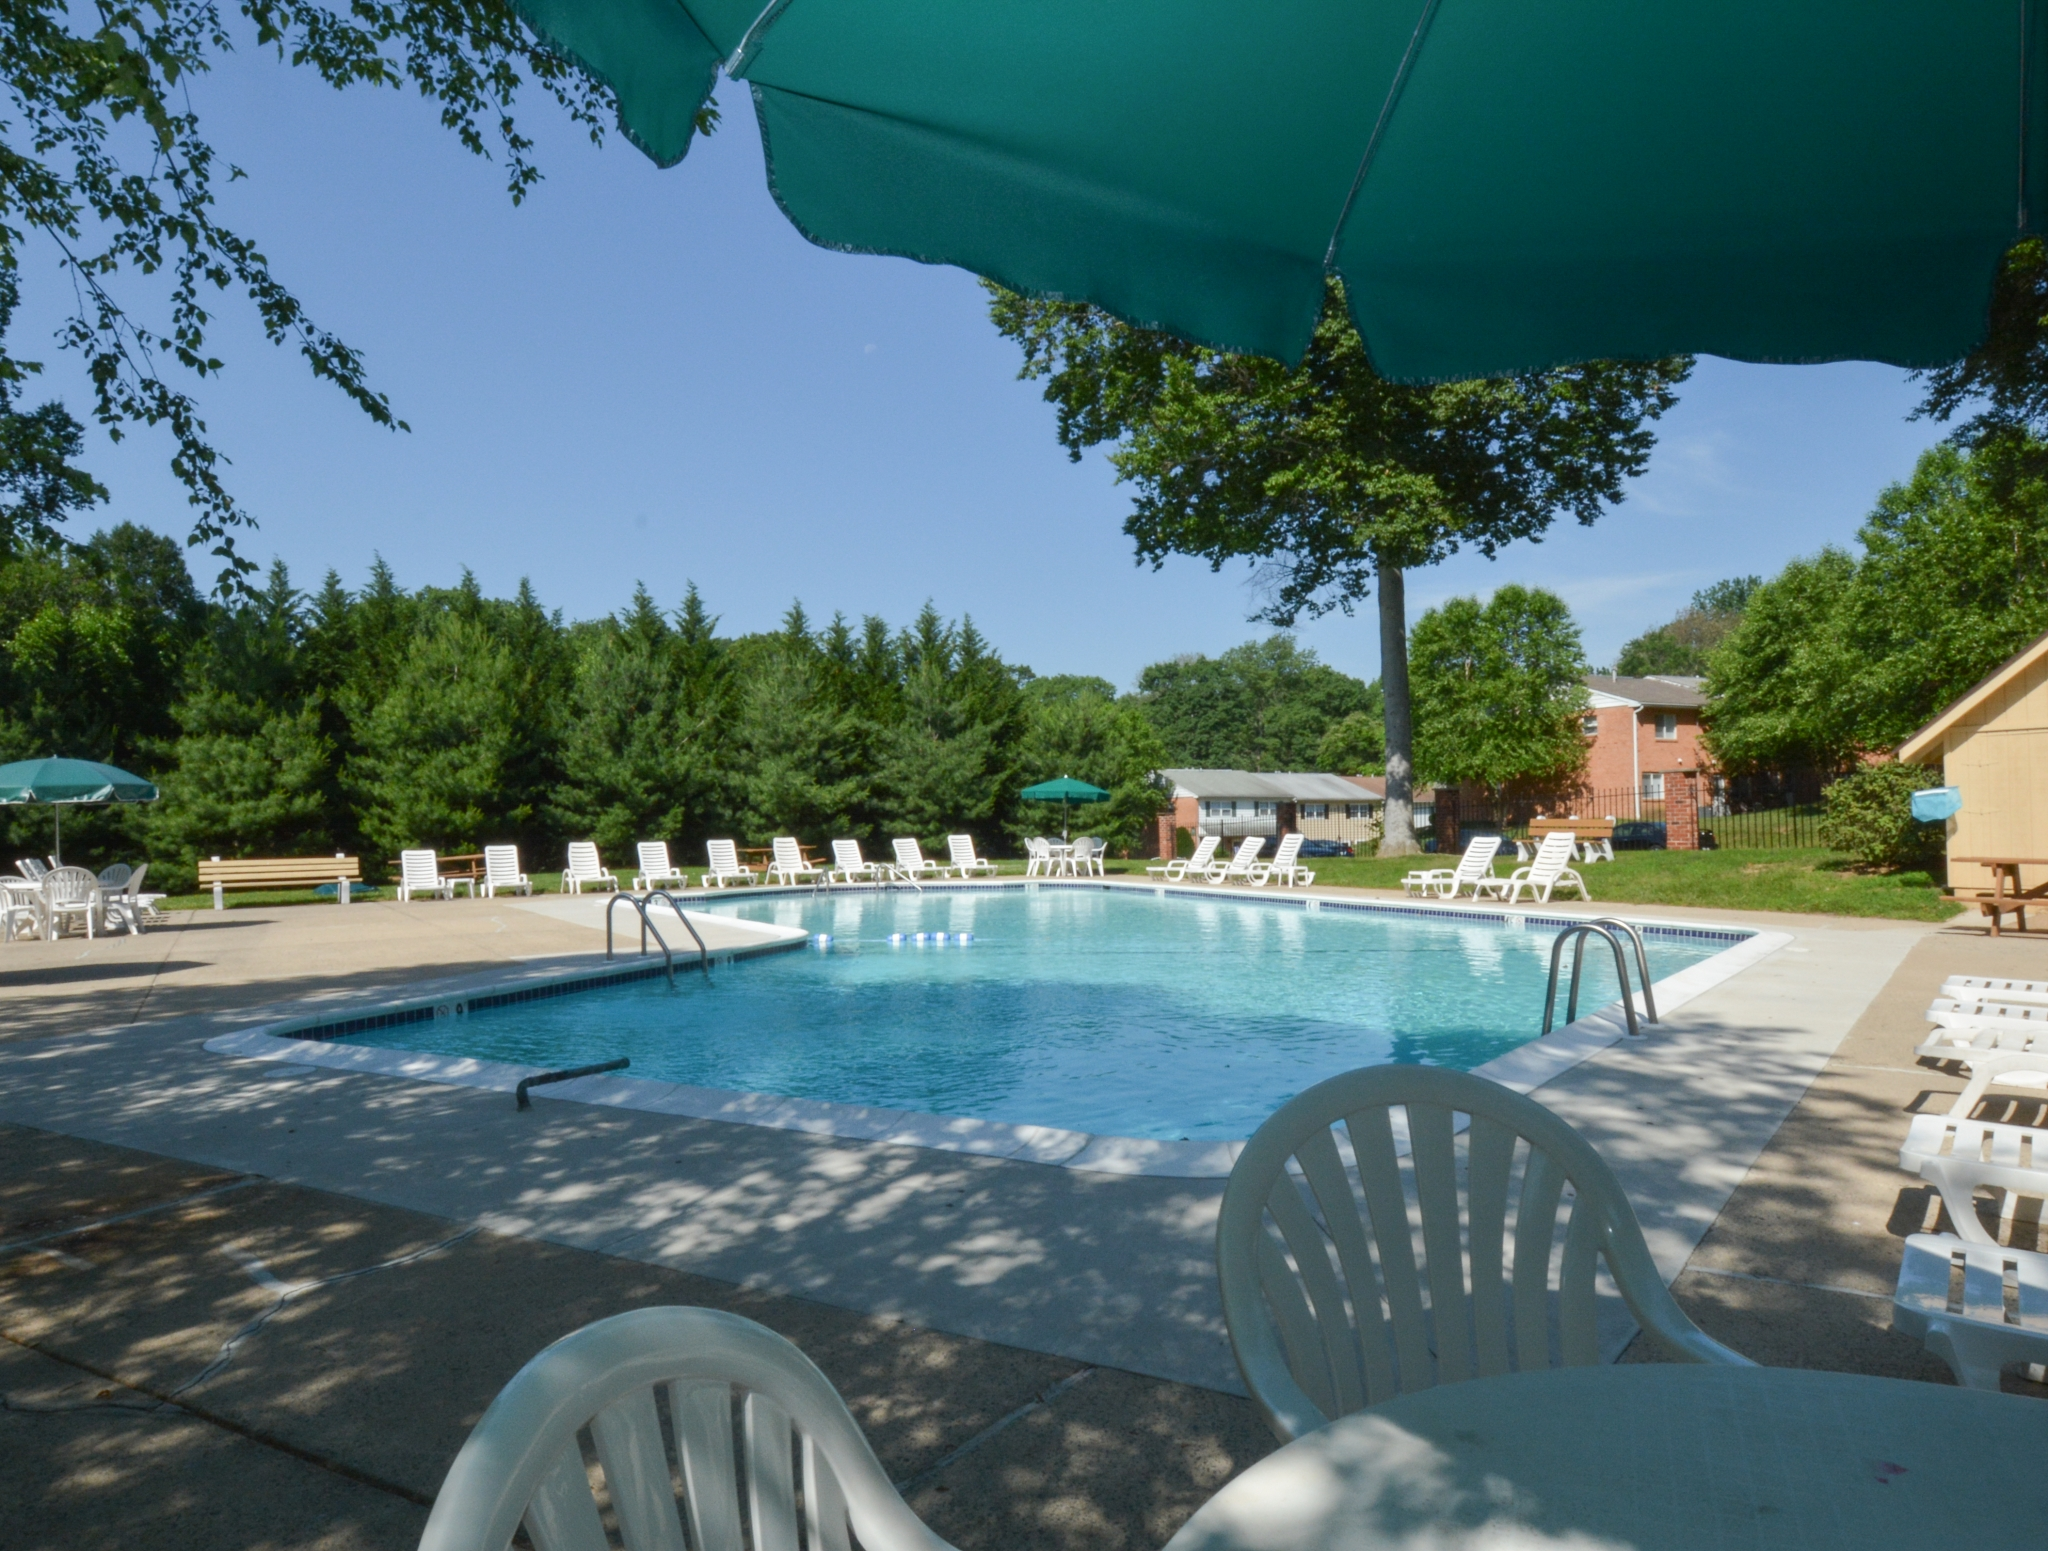 Year Round Swimming Pool | Apartments For Rent In Boothwyn PA | Rolling Glen Townhomes and Apartments